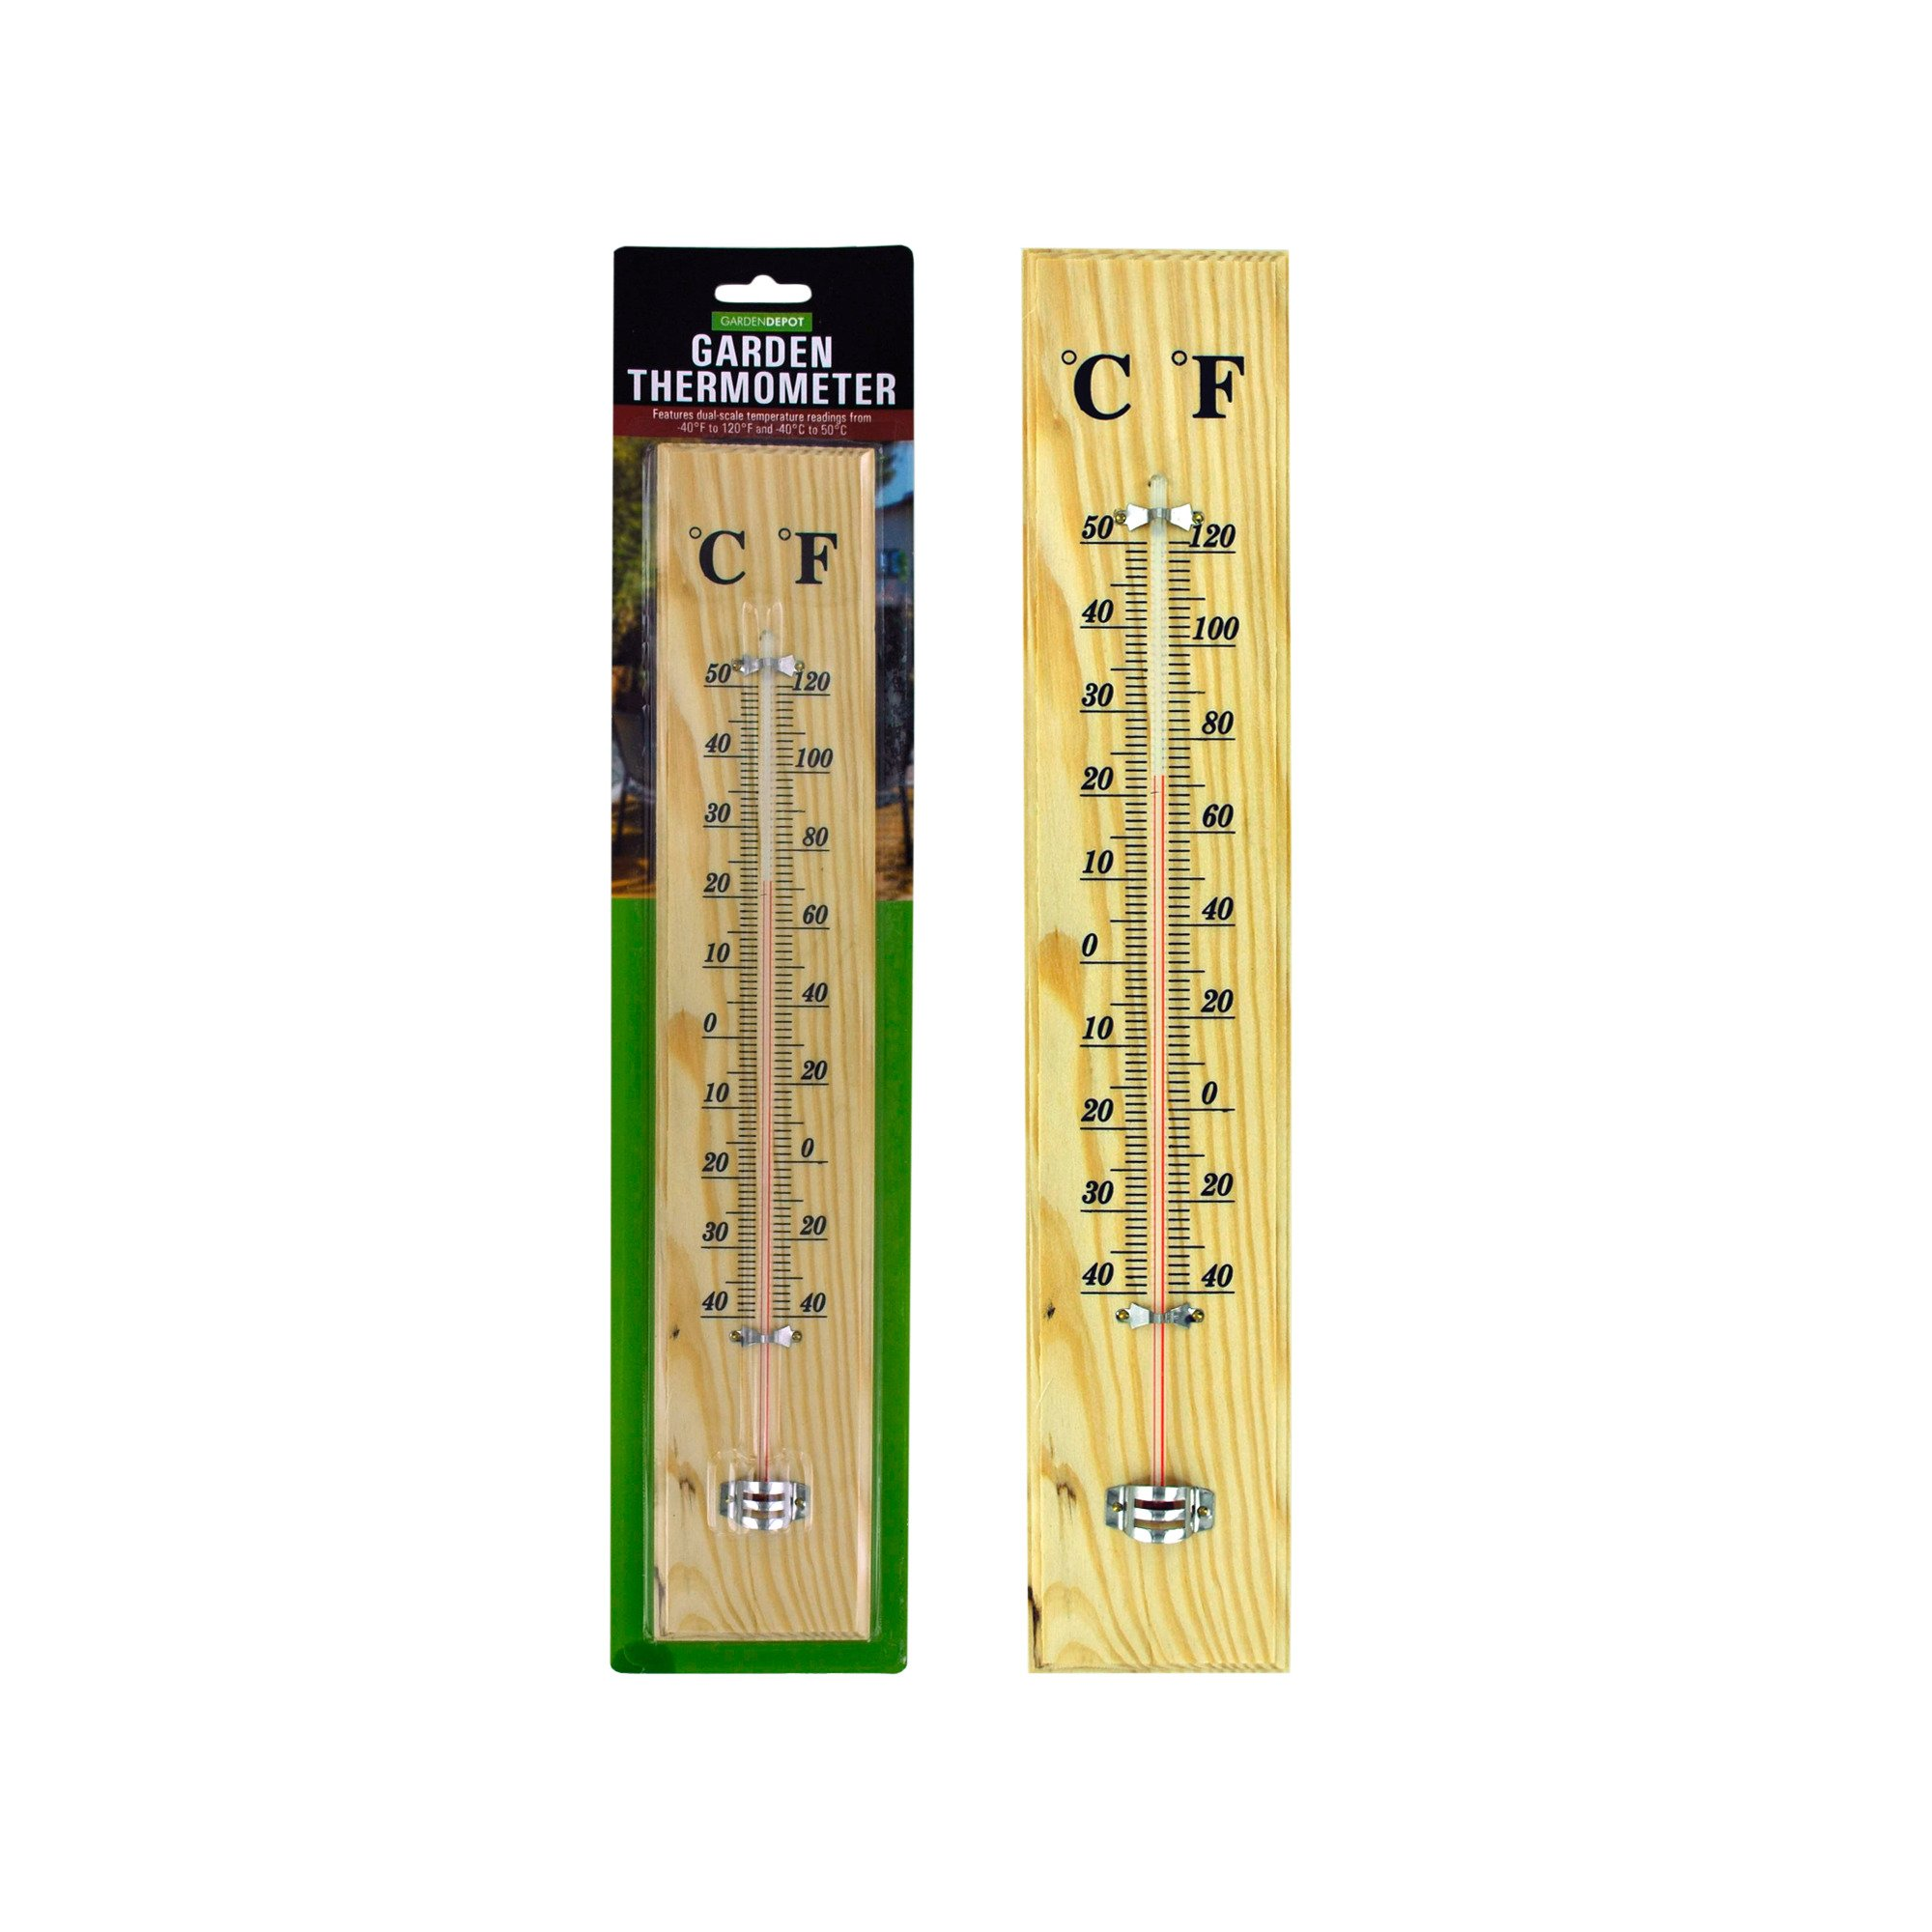 123-Wholesale - Set of 18 Wooden Garden Thermometer - Household Supplies Thermometers